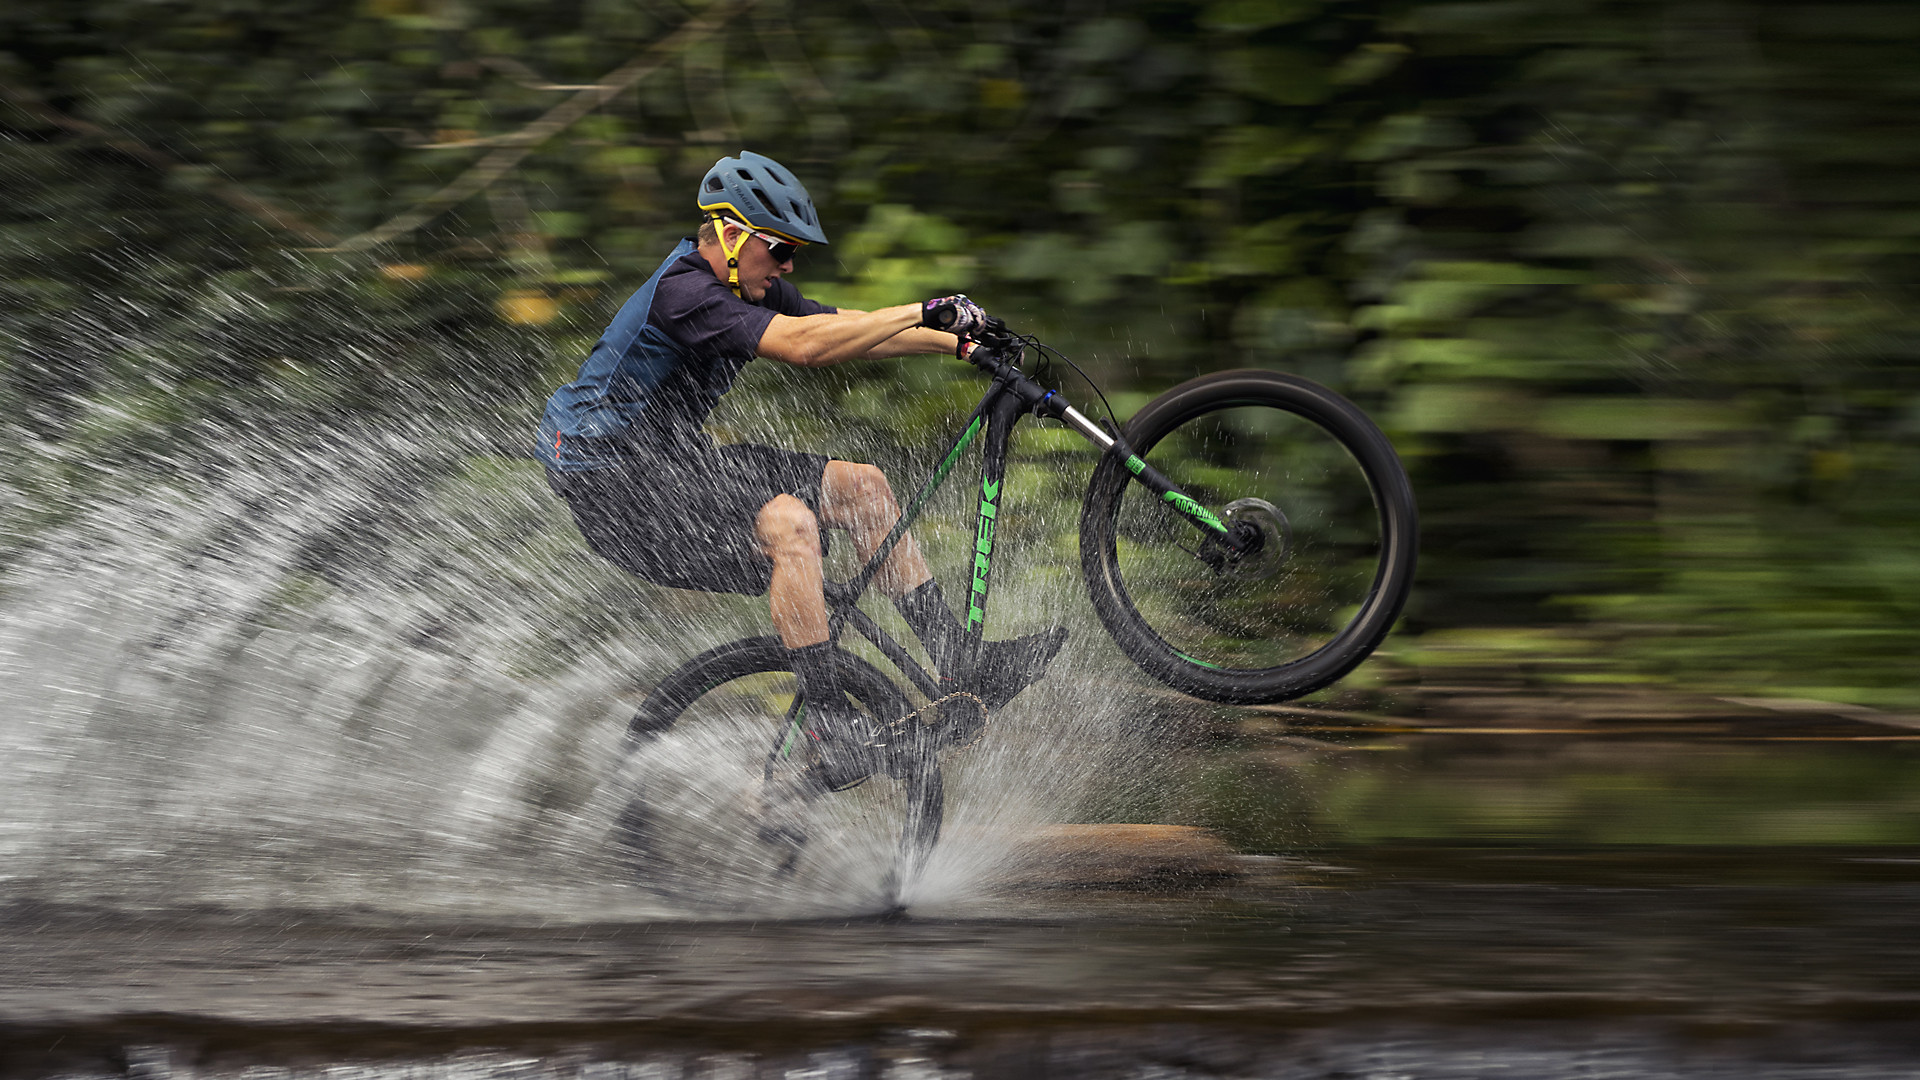 Trek Bikes - The world's best bikes and cycling gear | Trek Bikes